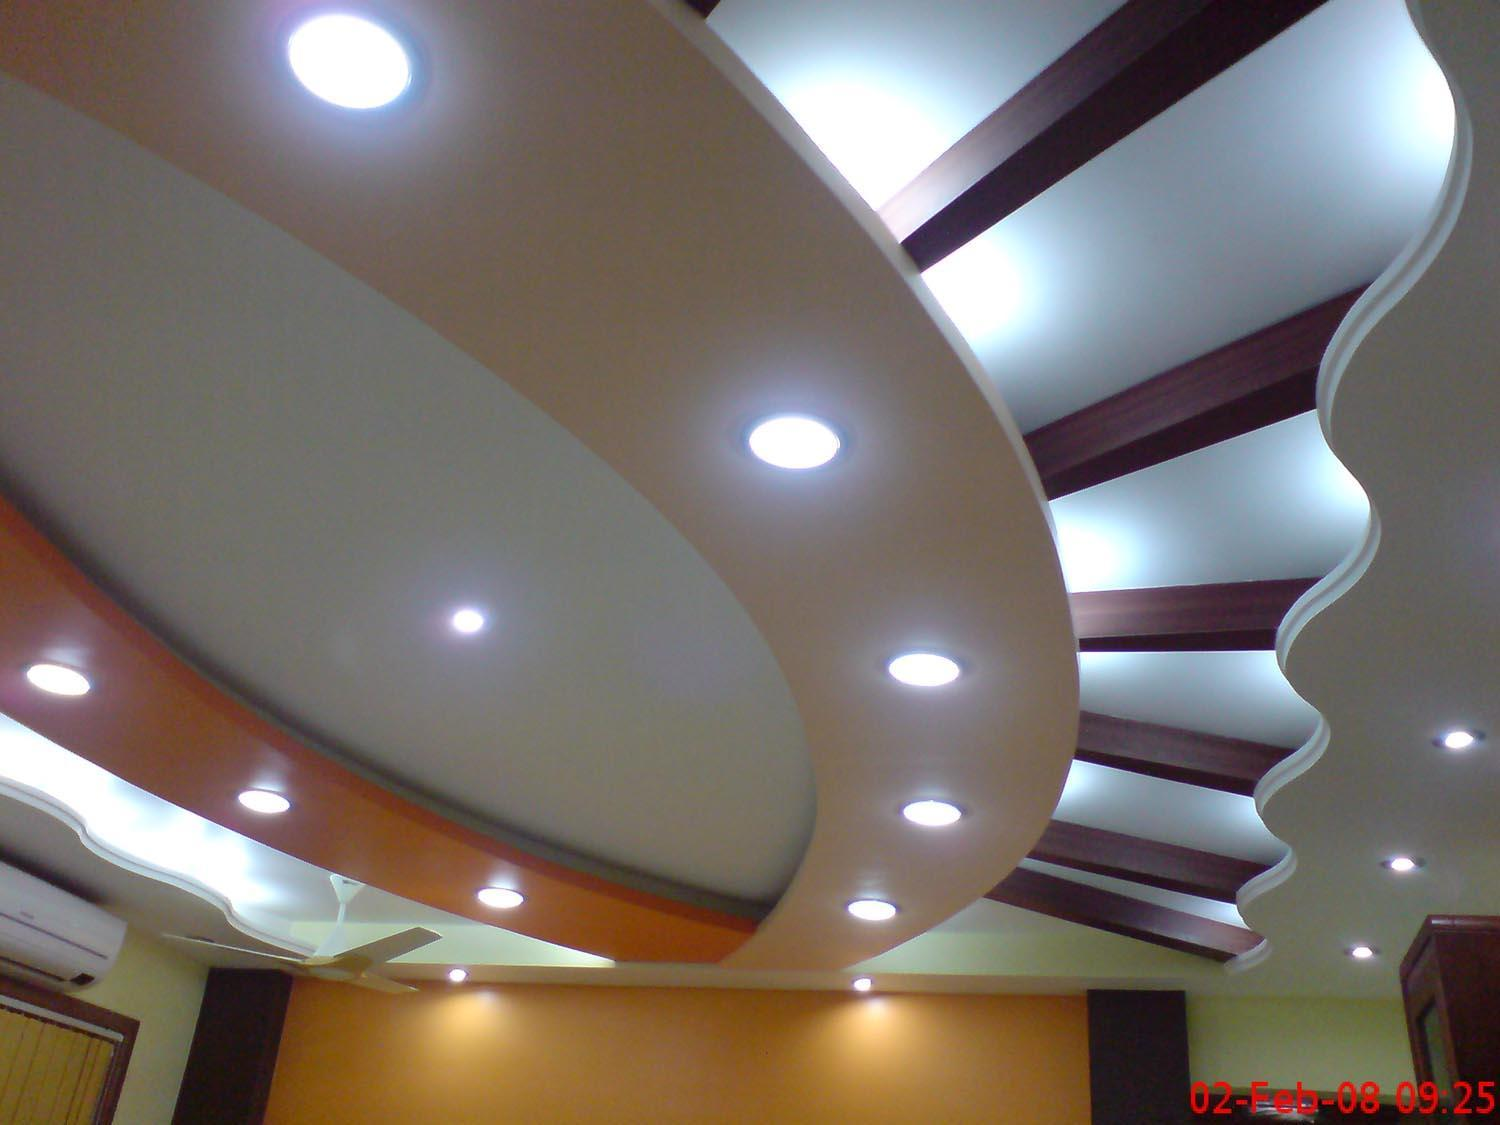 Stylish ceiling design with li....